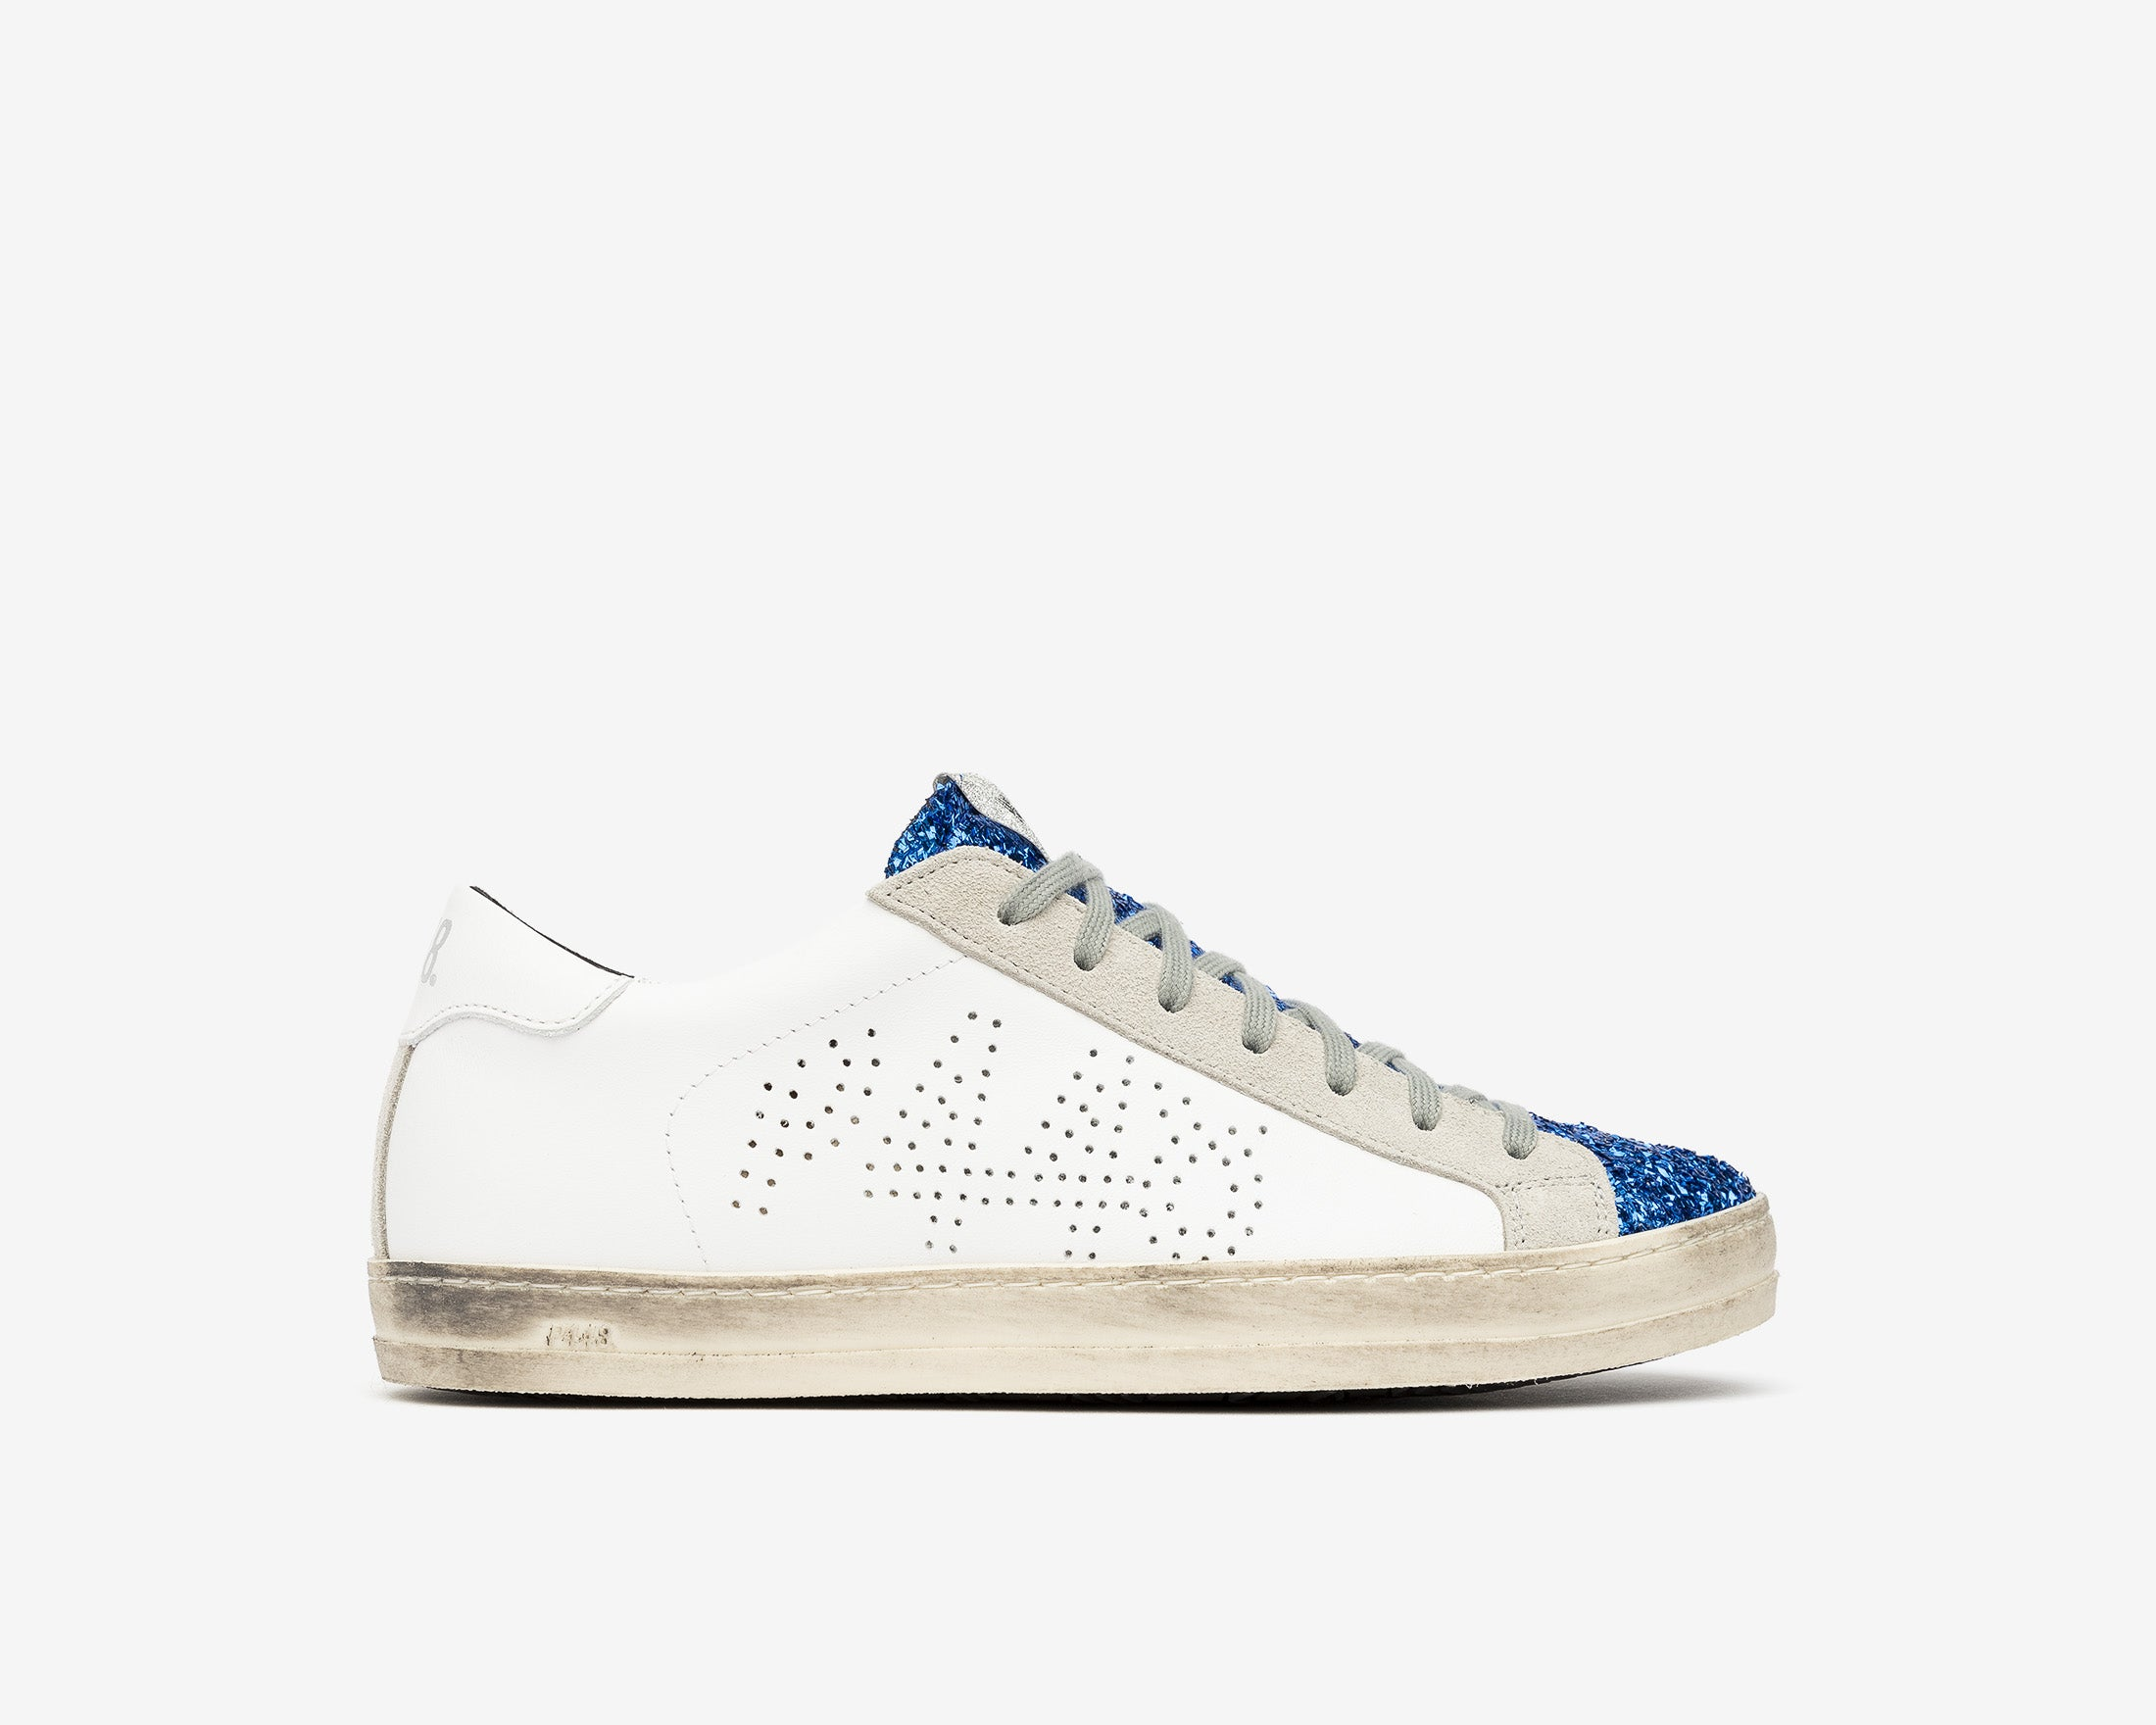 John Low-Top Sneaker in Royal/Lunar - Profile